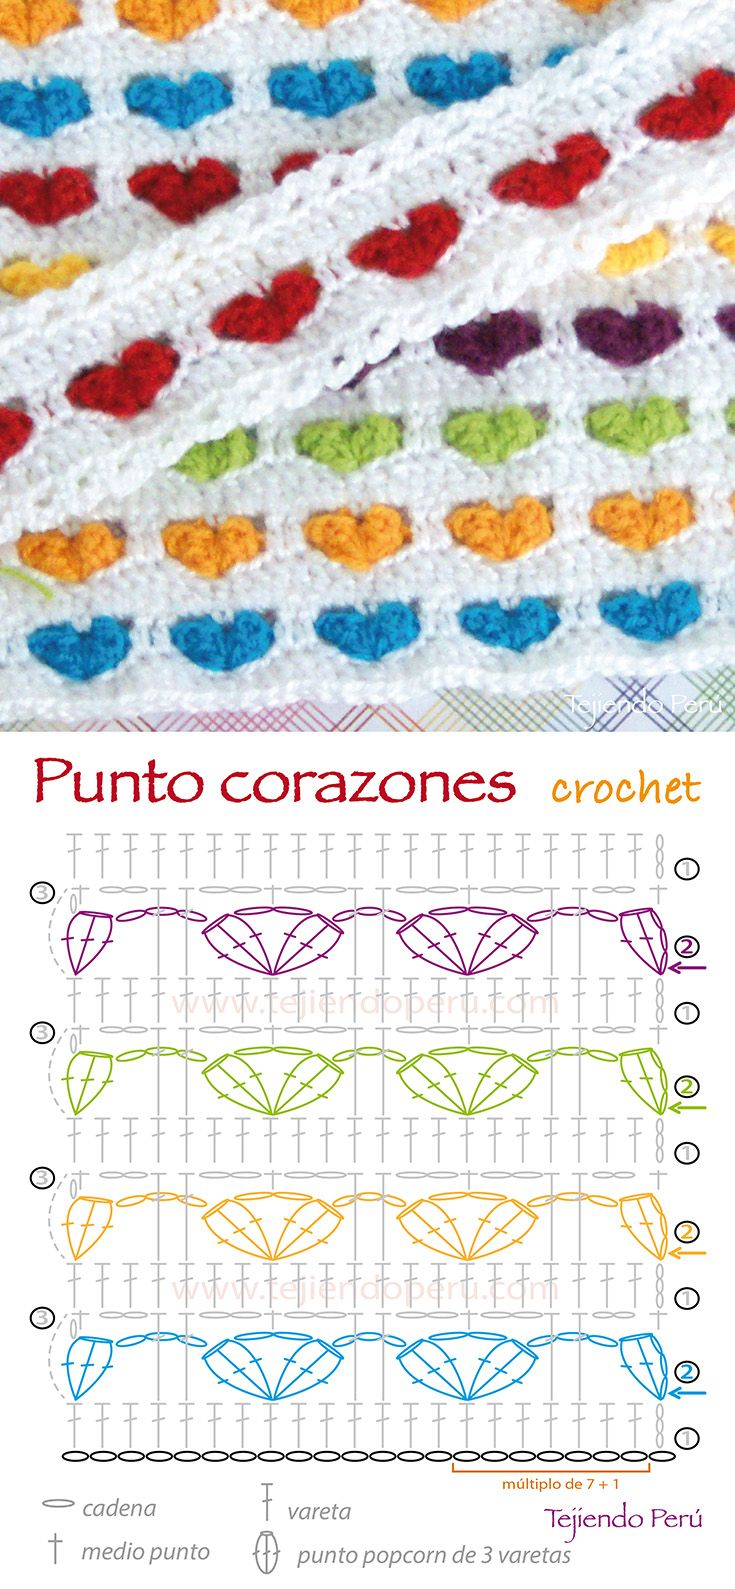 94 best Patrones de ganchillo images on Pinterest | Crochet patterns ...